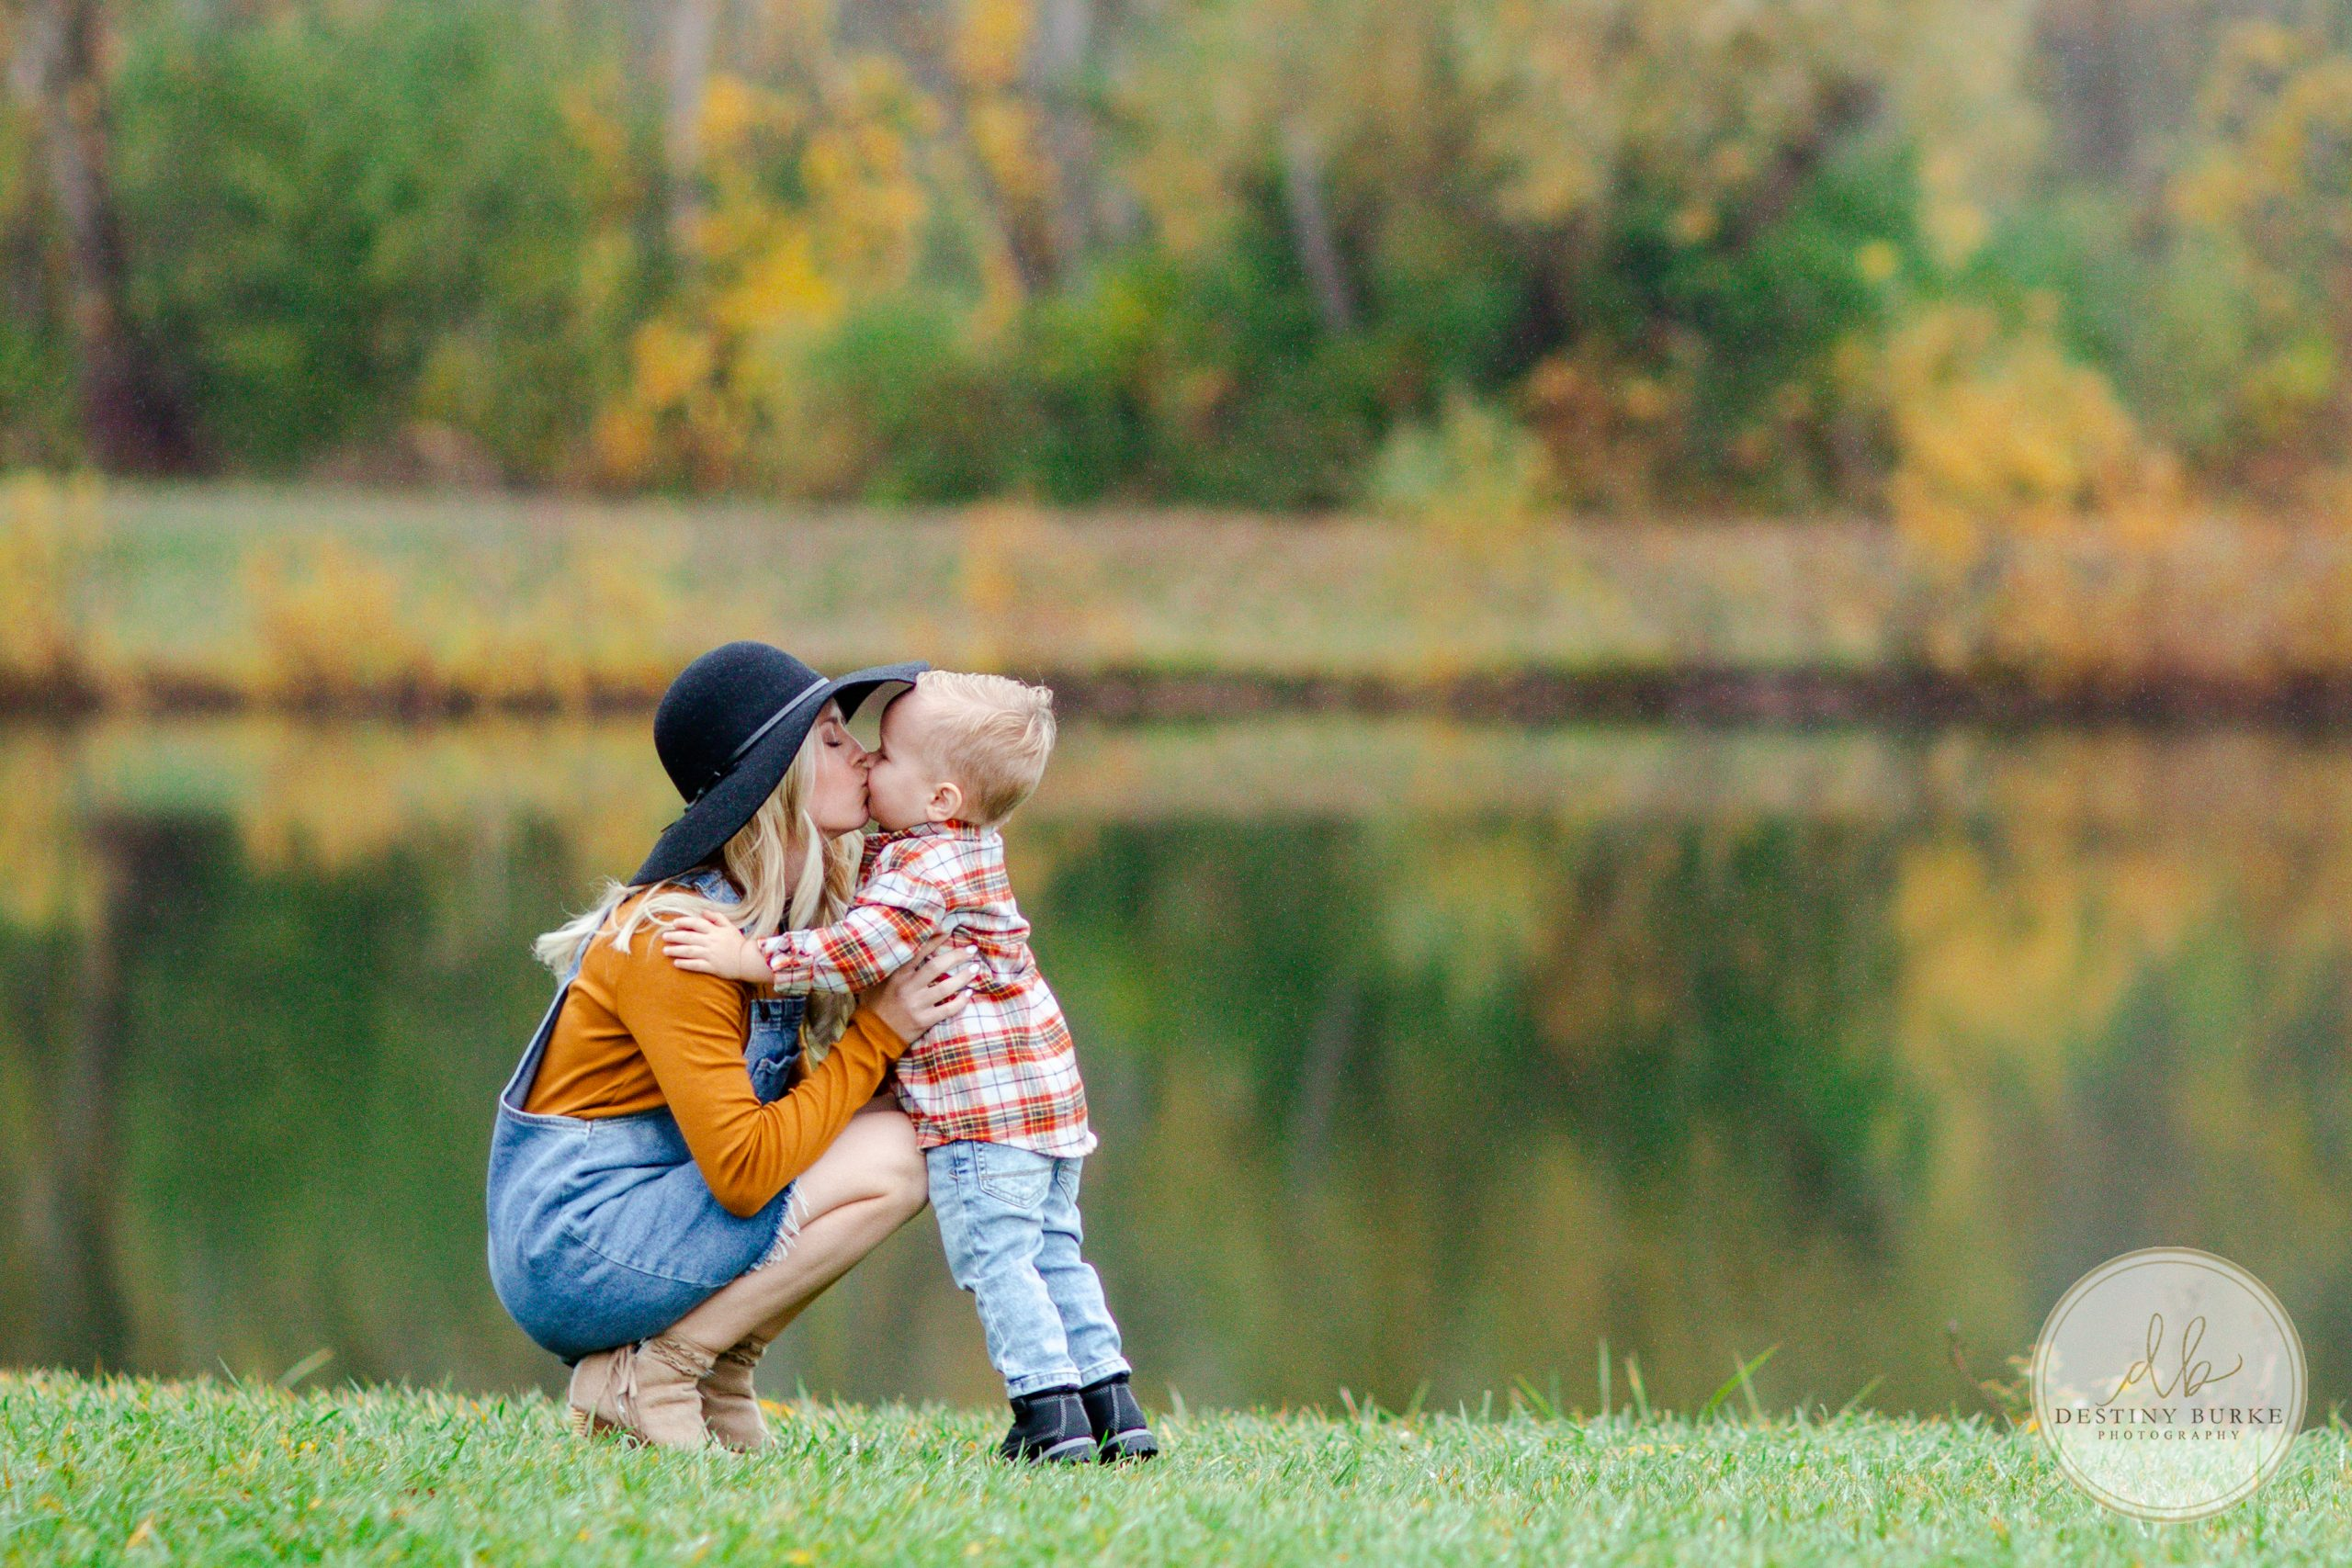 Mommy, Mom, Mommy and Me, Love, Boy, Child, Park, Leaves, Fall, Autumn